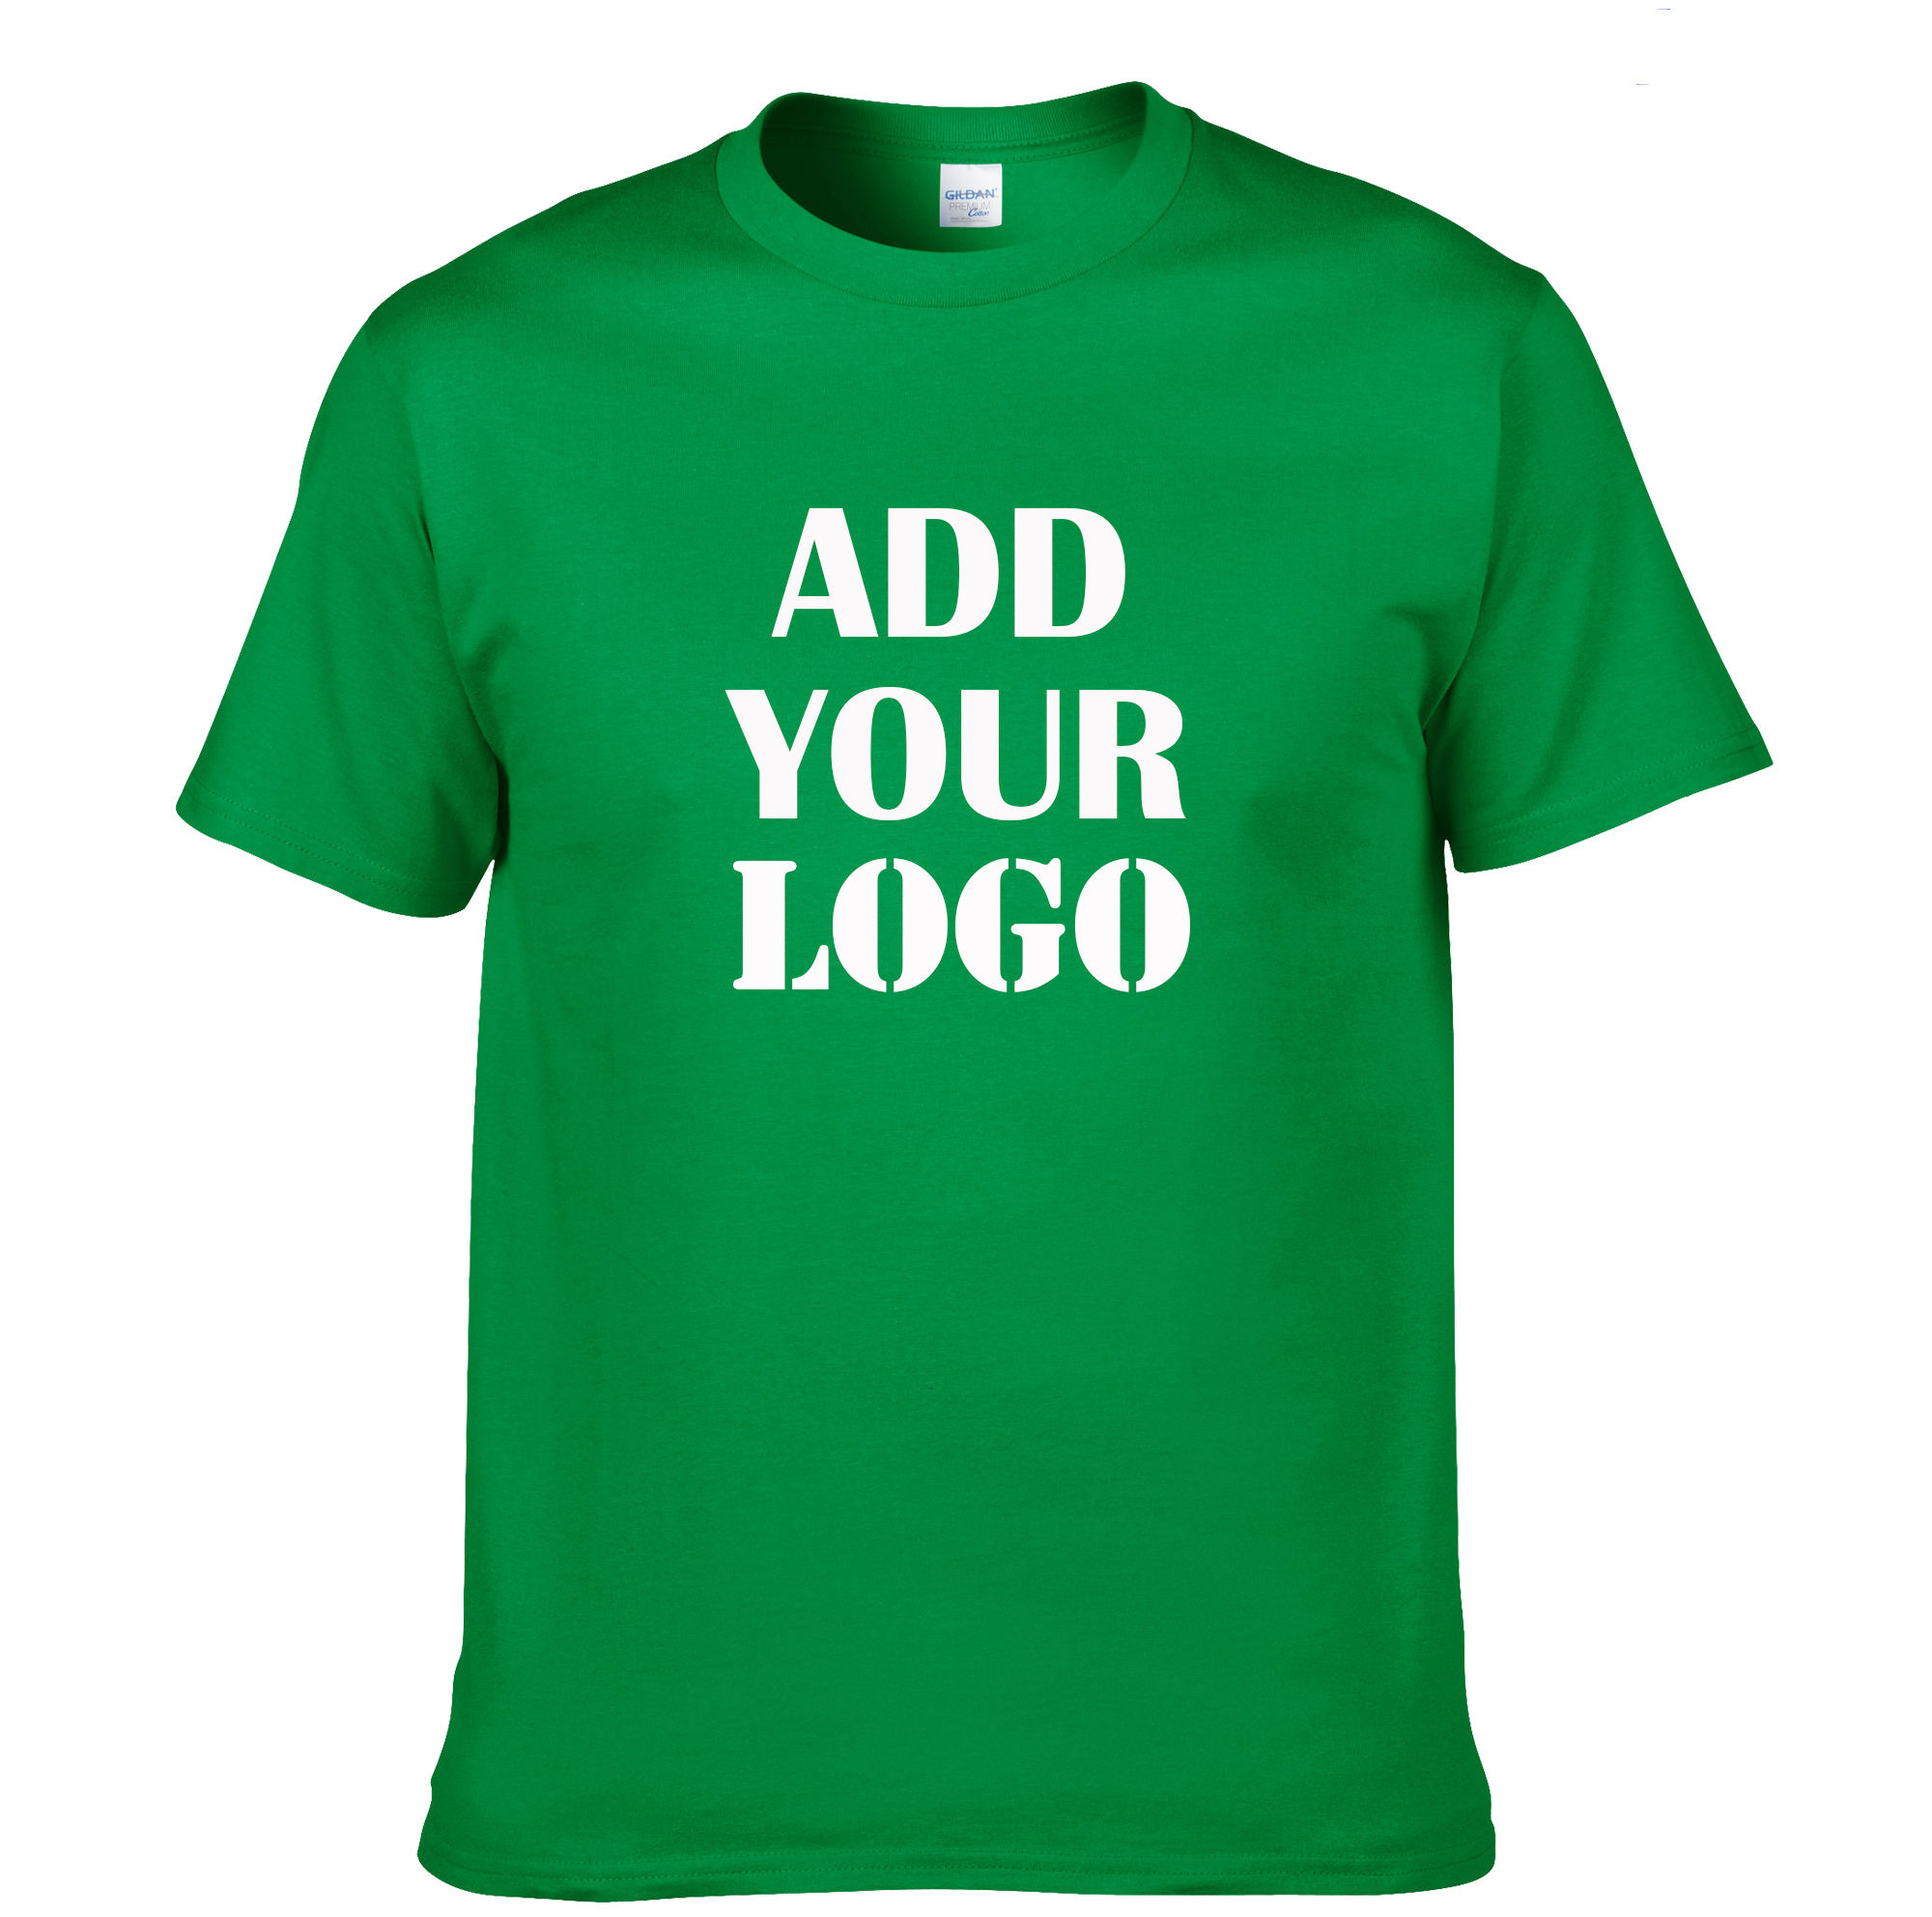 20 pcs minimum paypal accept free shipping 100% American cotton custom tee shirt